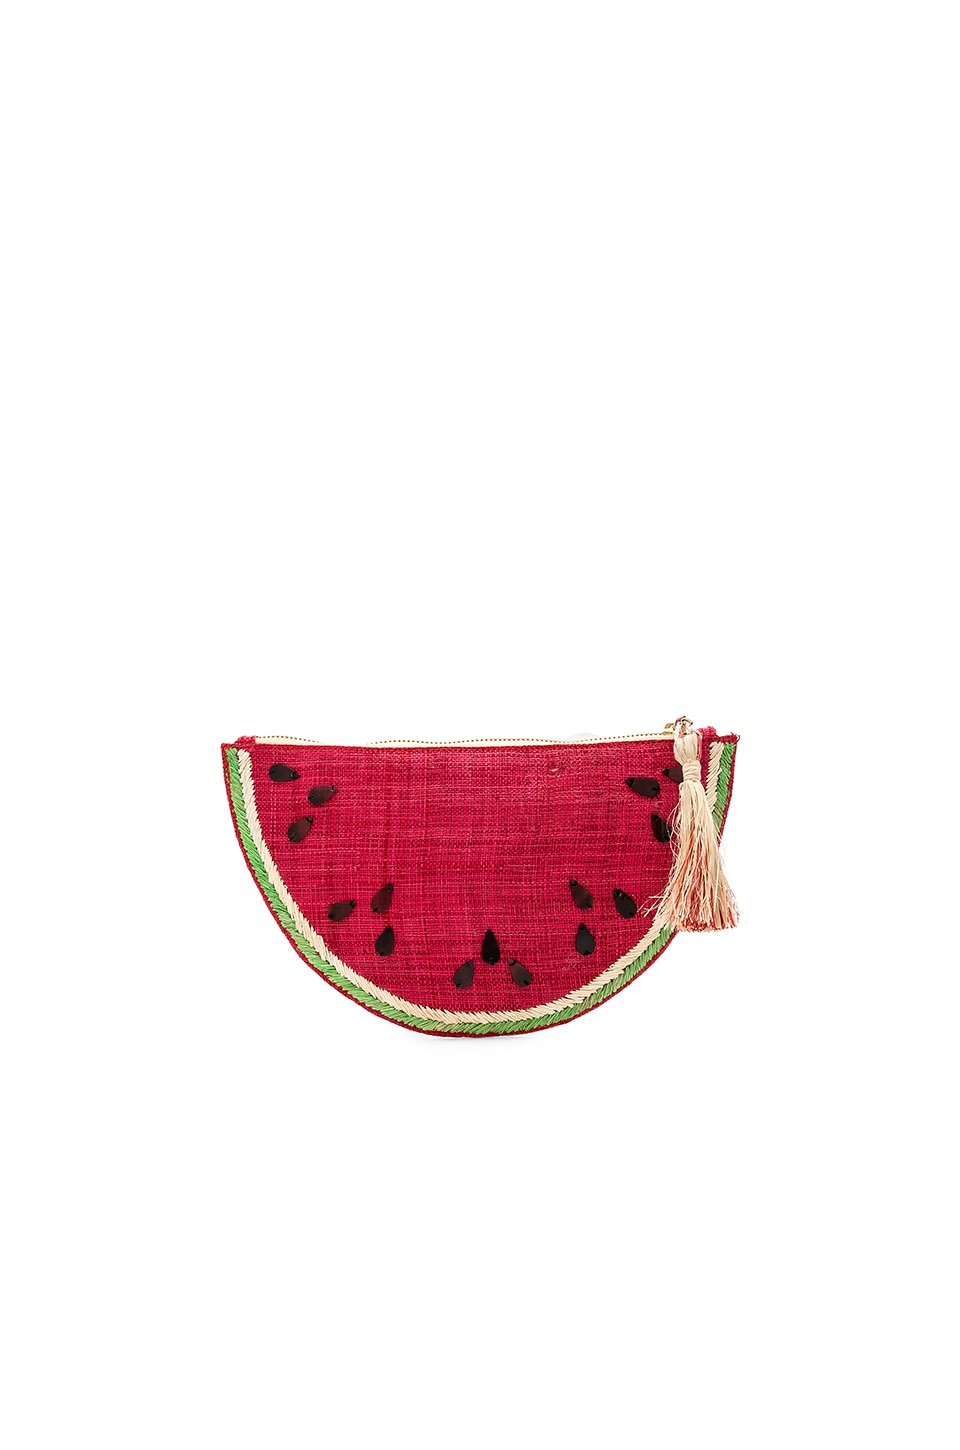 KAYU Frutta Clutch in Red